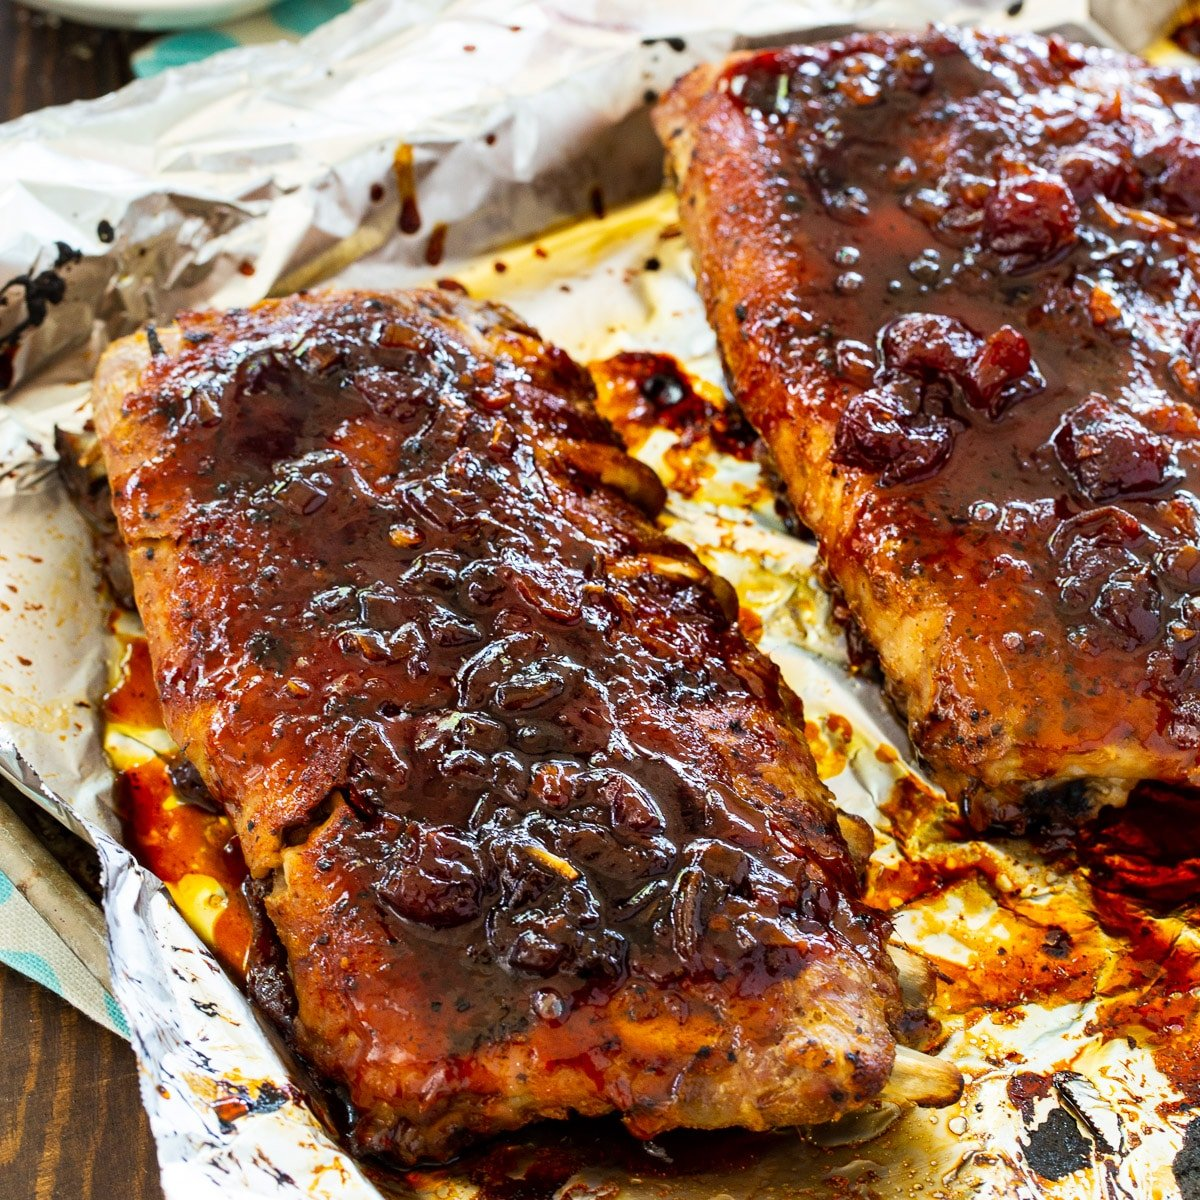 Ribs covered with glaze on a baking sheet.